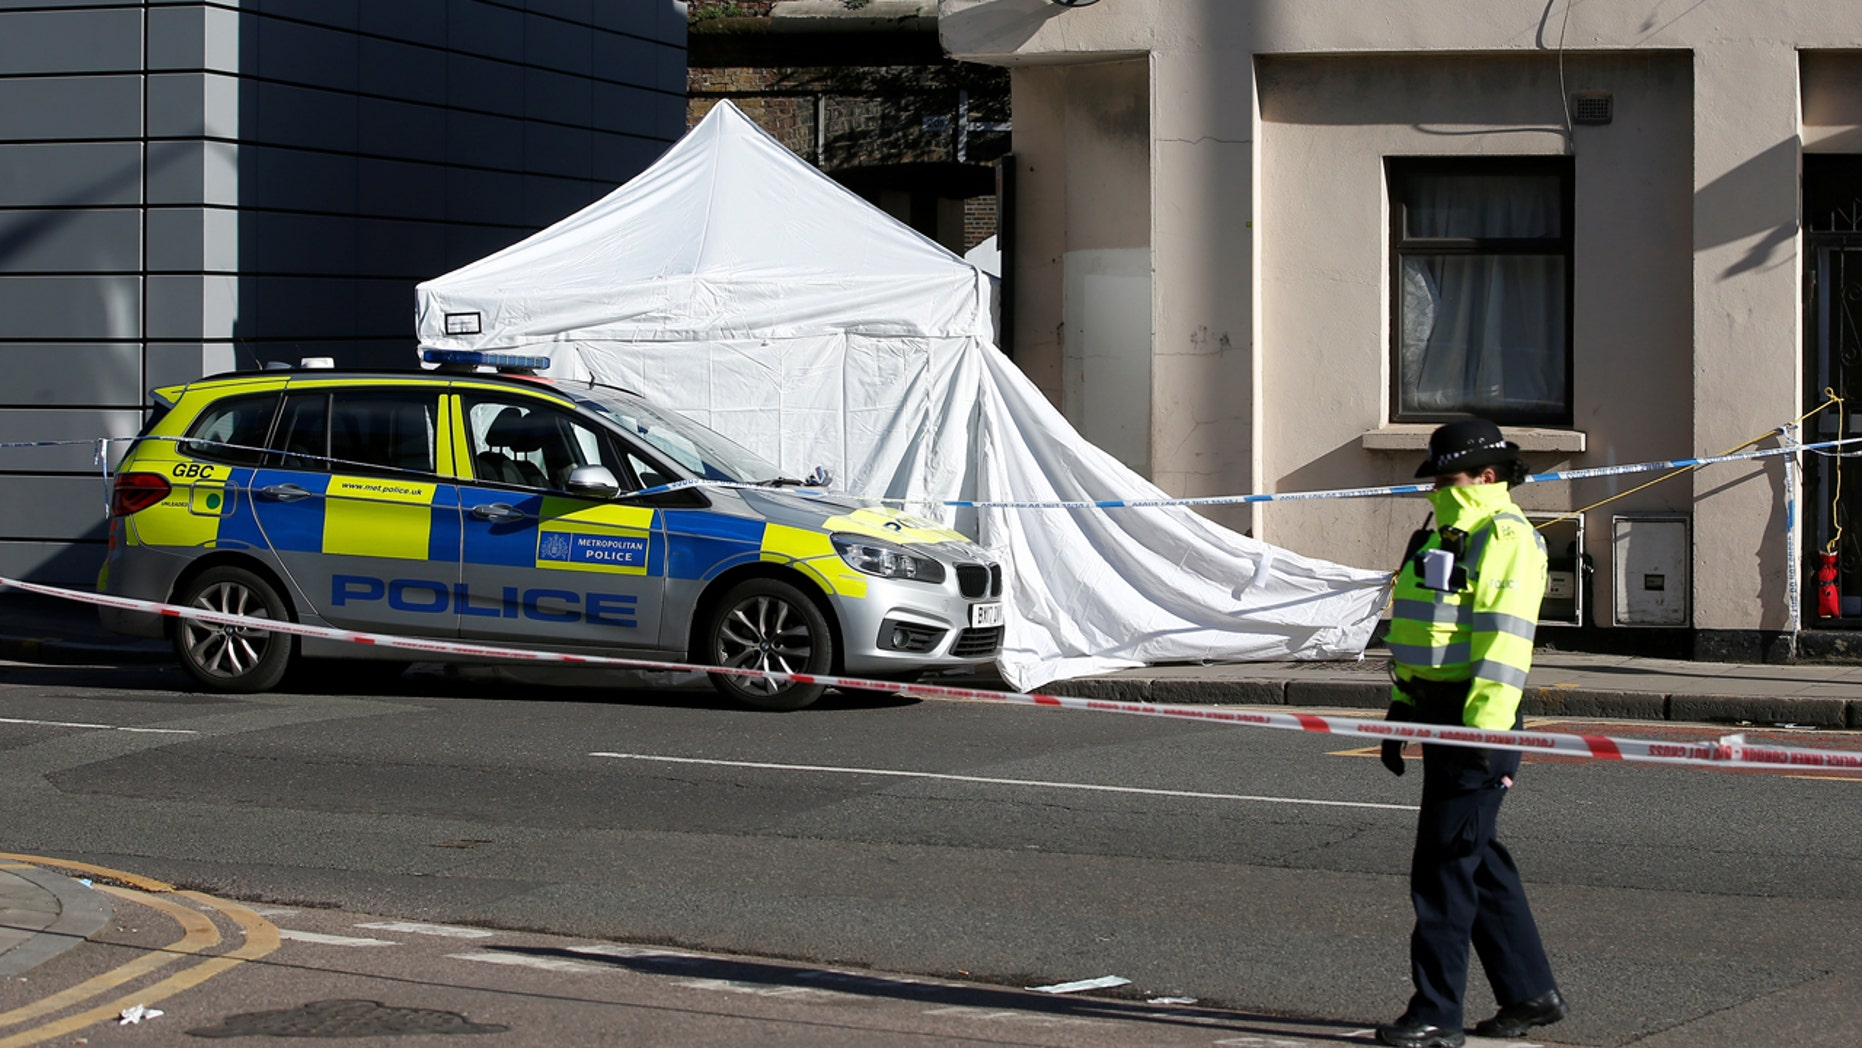 A police officer stands guard at the scene where a man died from stab wounds on the night of April 4, 2018, on Link Street in east London, Britain, April 5, 2018.